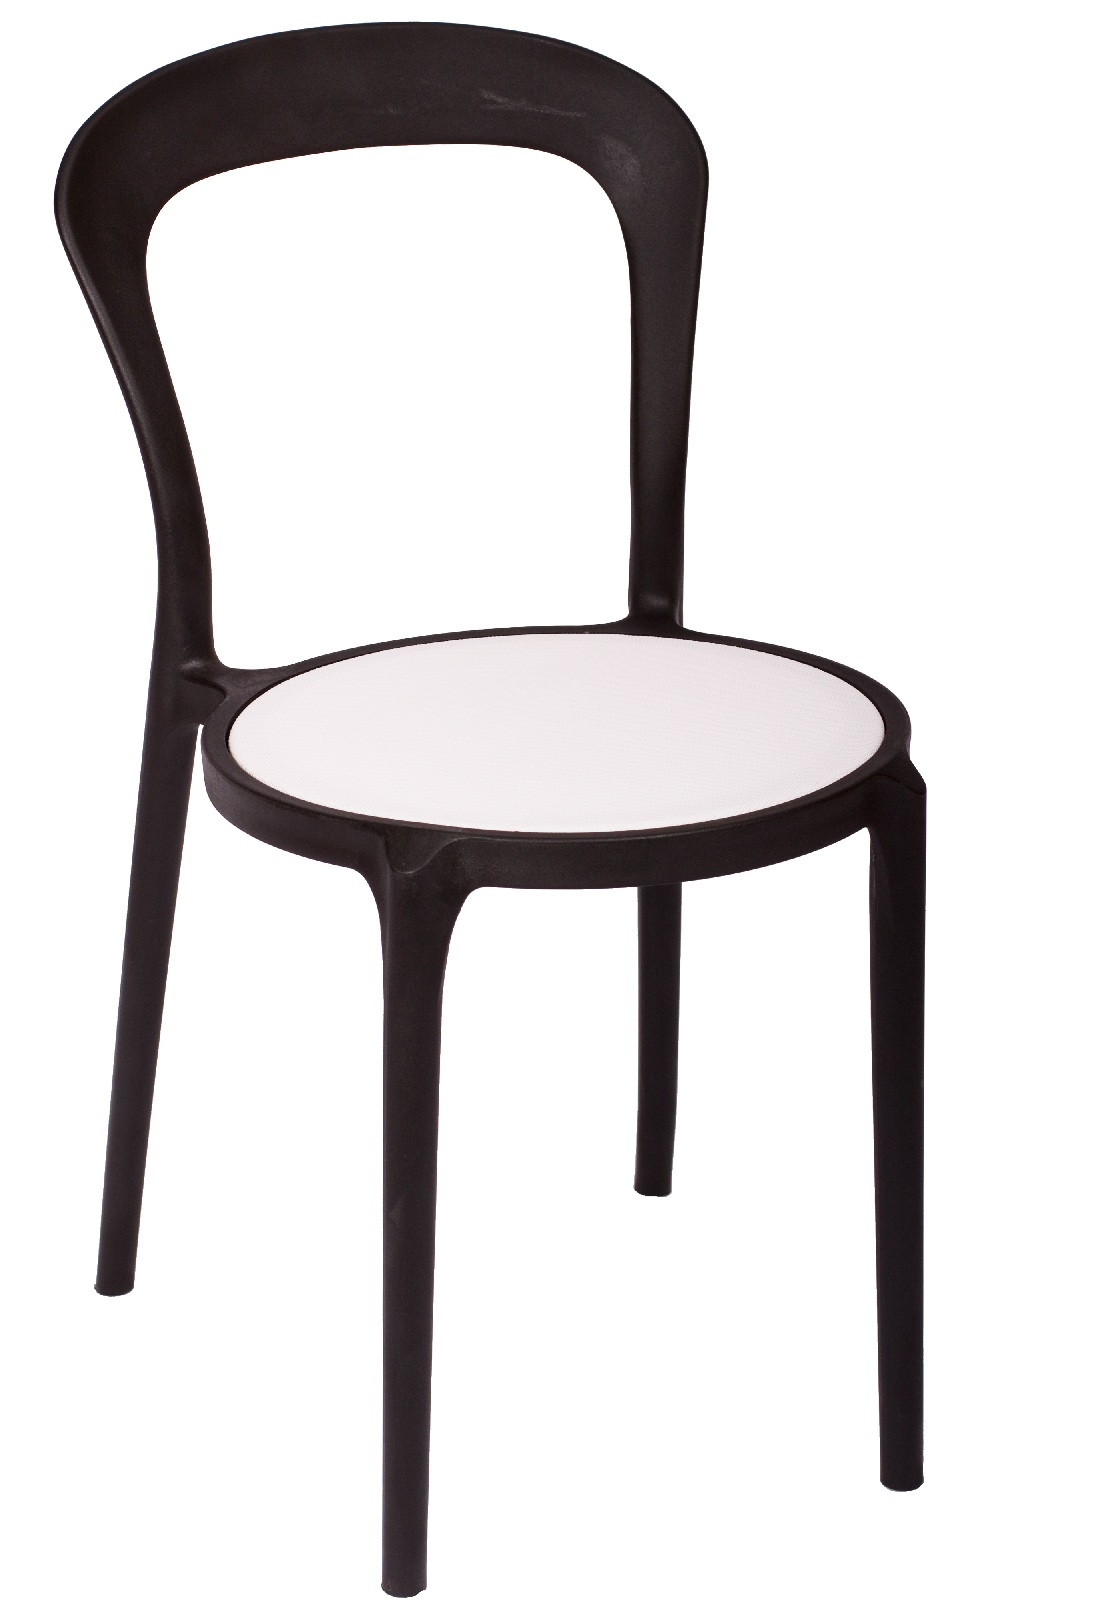 Restaurant Chairs And Tables Bfm Malibu Outdoor Restaurant Chair Blackw Textilene White Sea